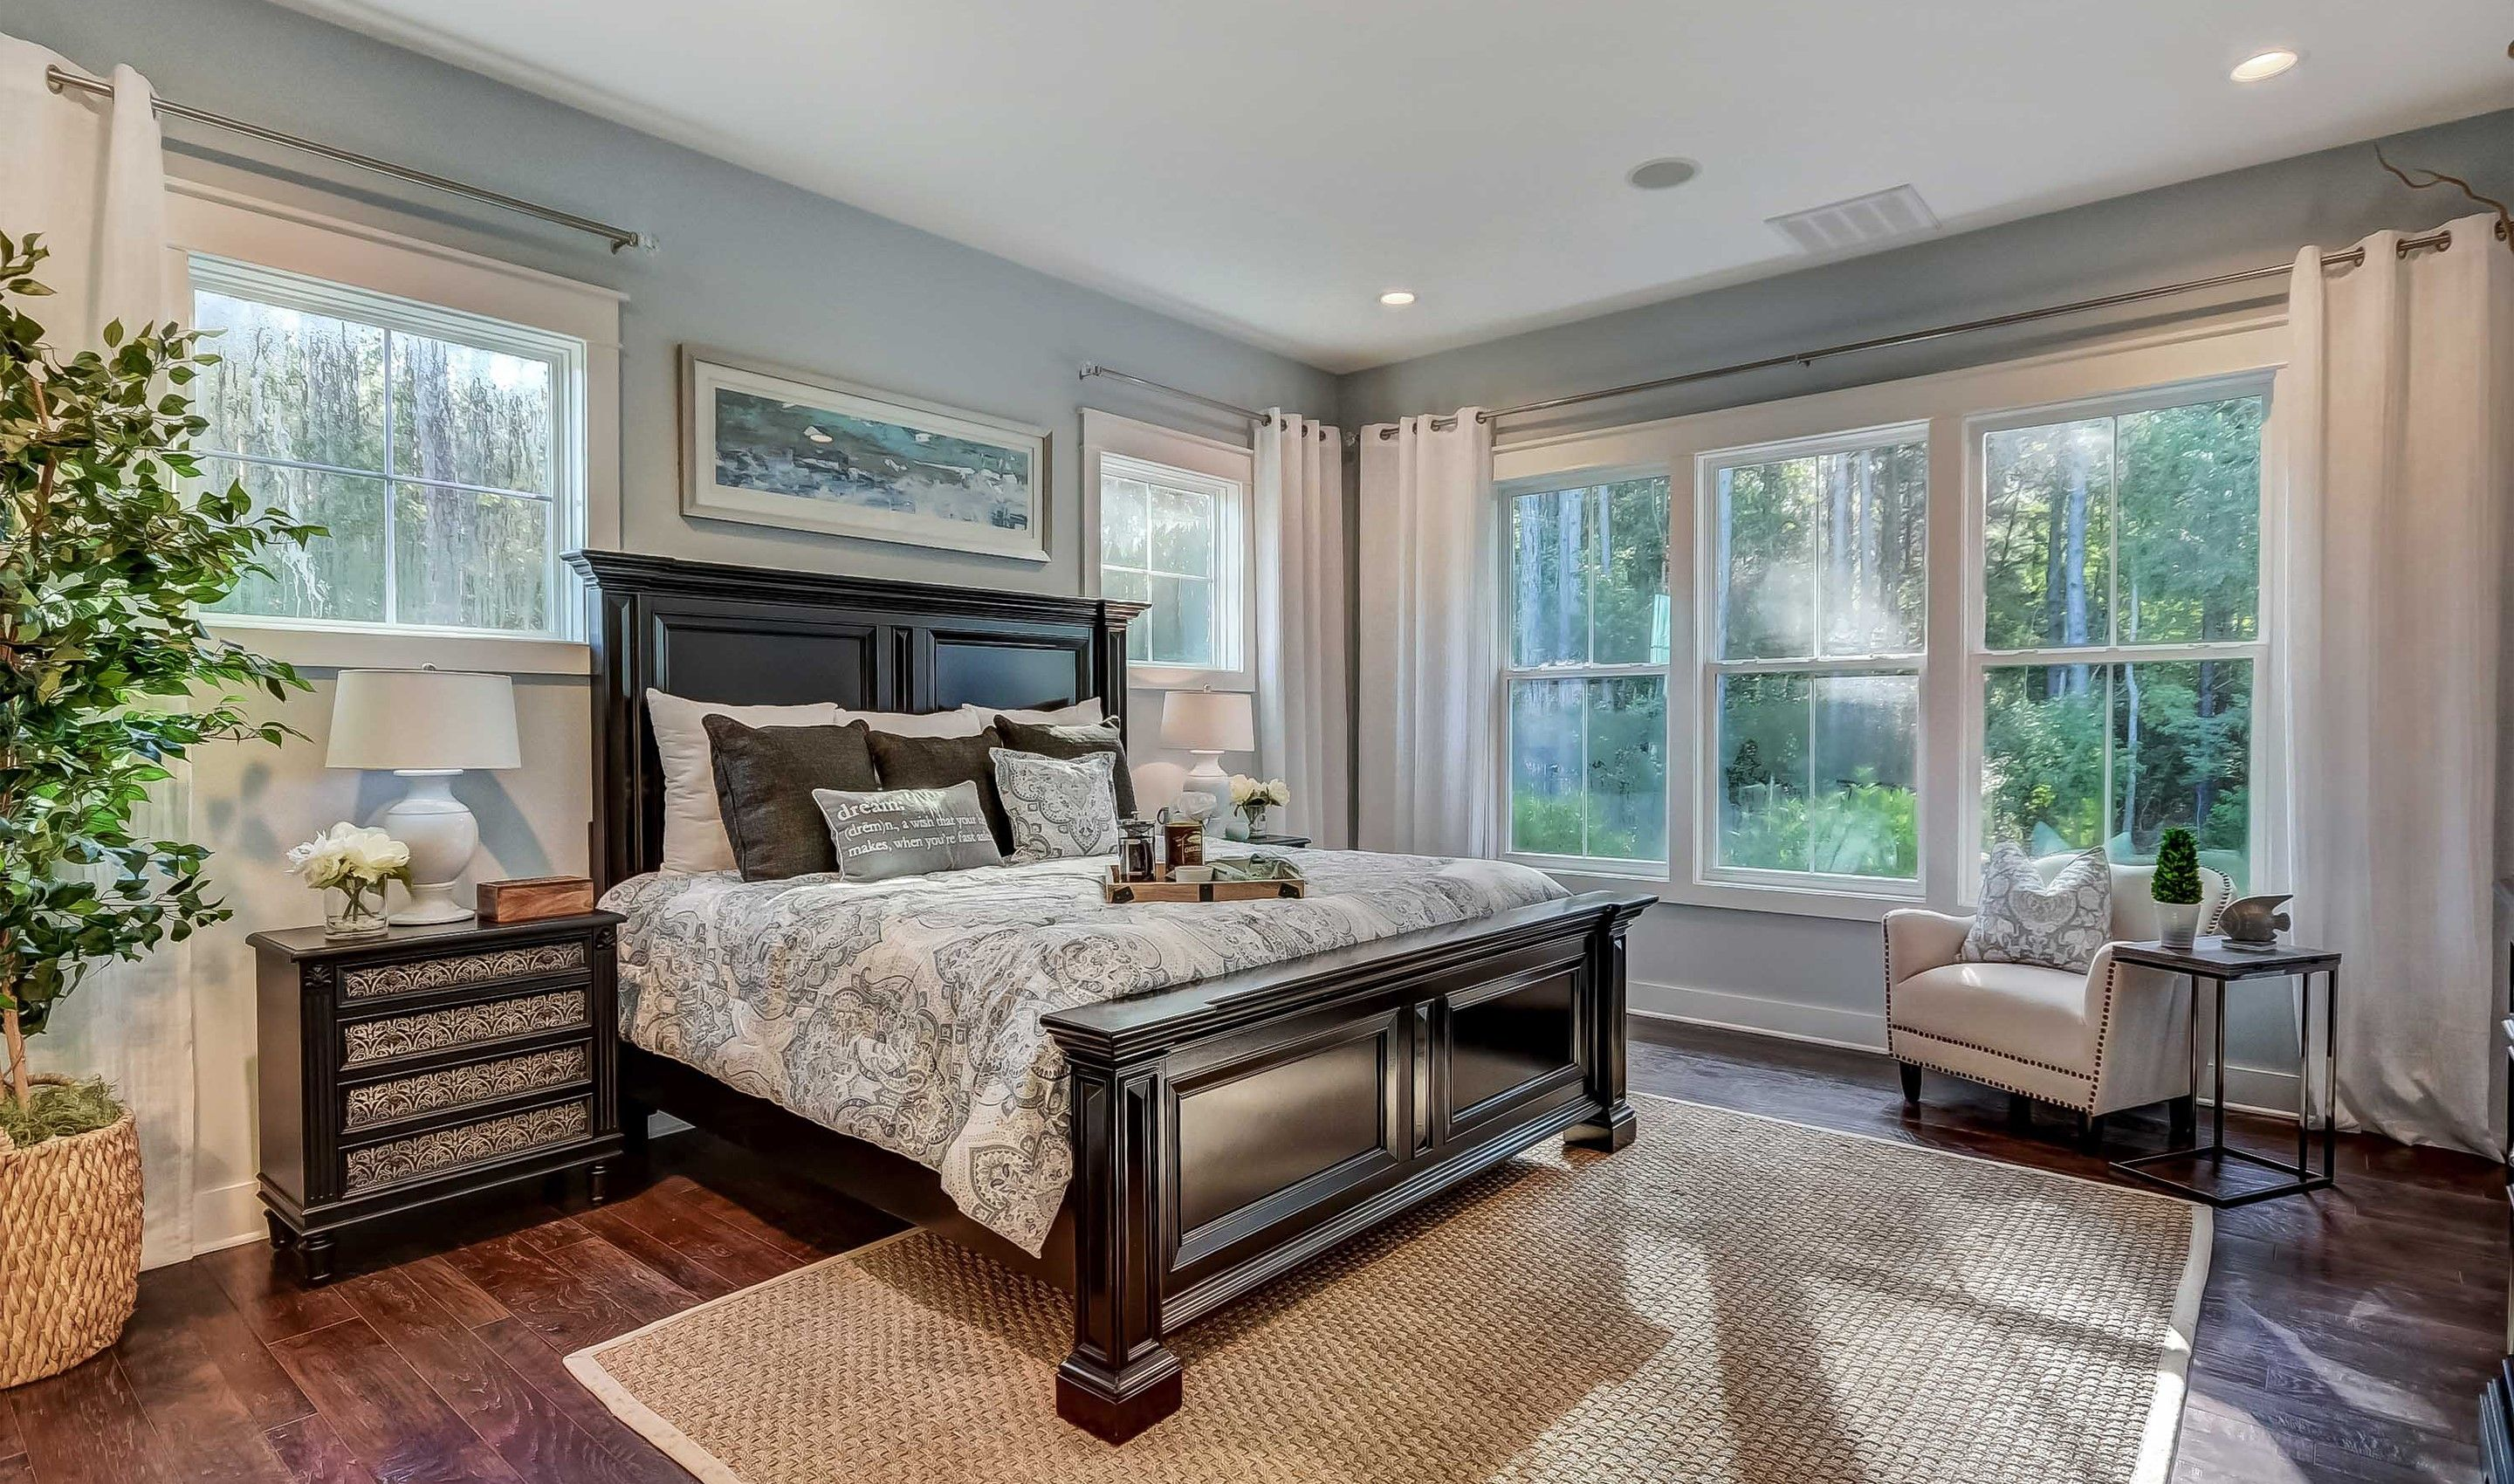 Bedroom featured in the Ravenna Loft By K. Hovnanian's® Four Seasons in Hilton Head, SC